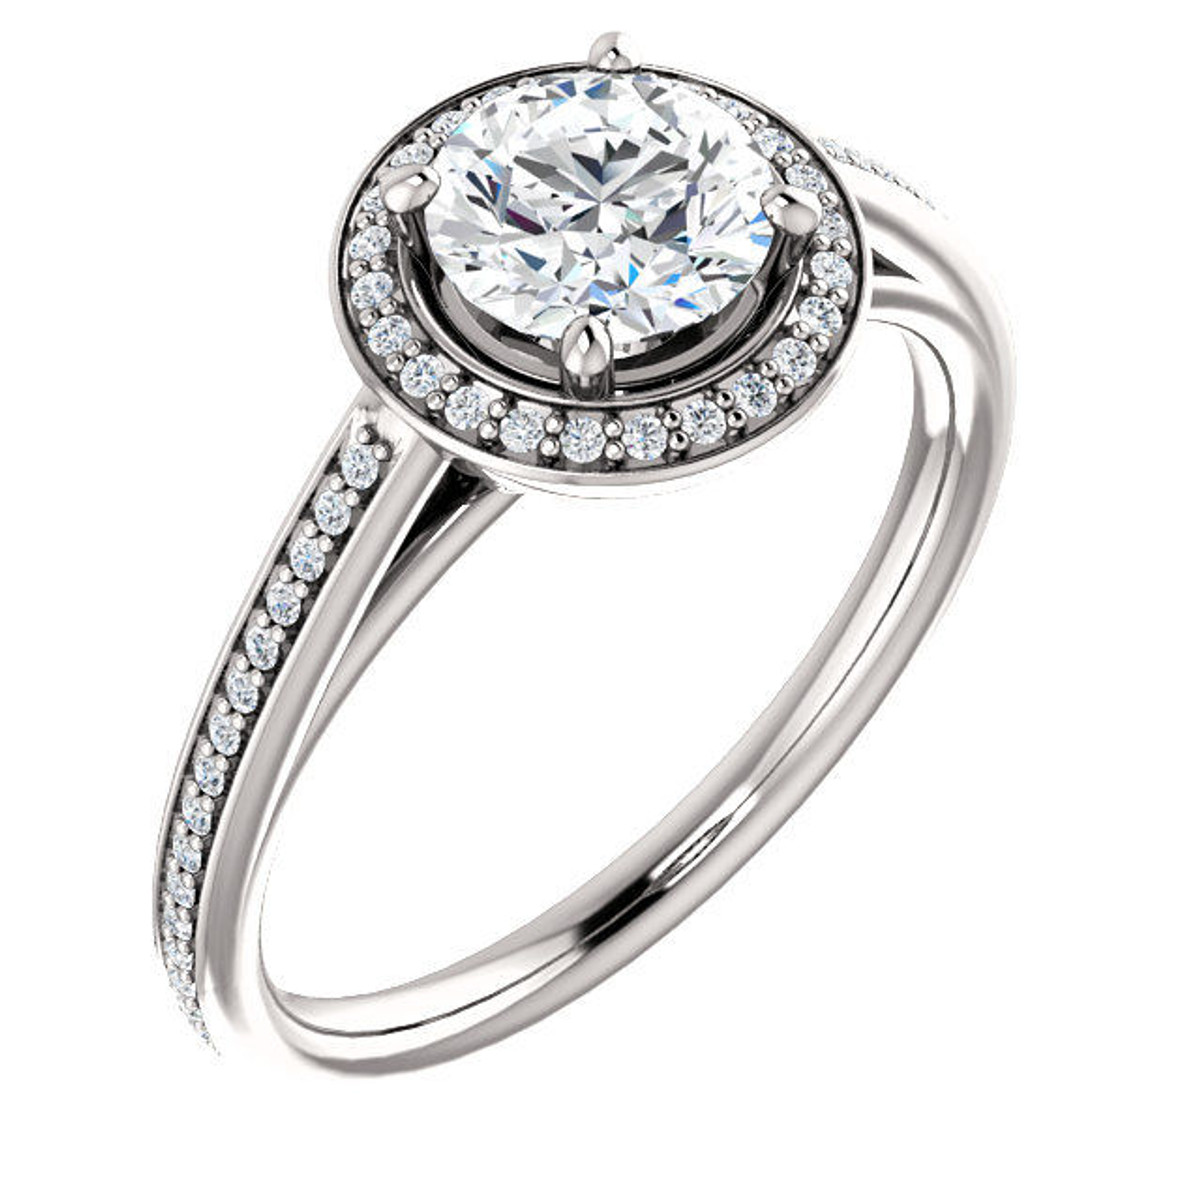 White Gold Round Cut Halo Diamond Engagement Ring